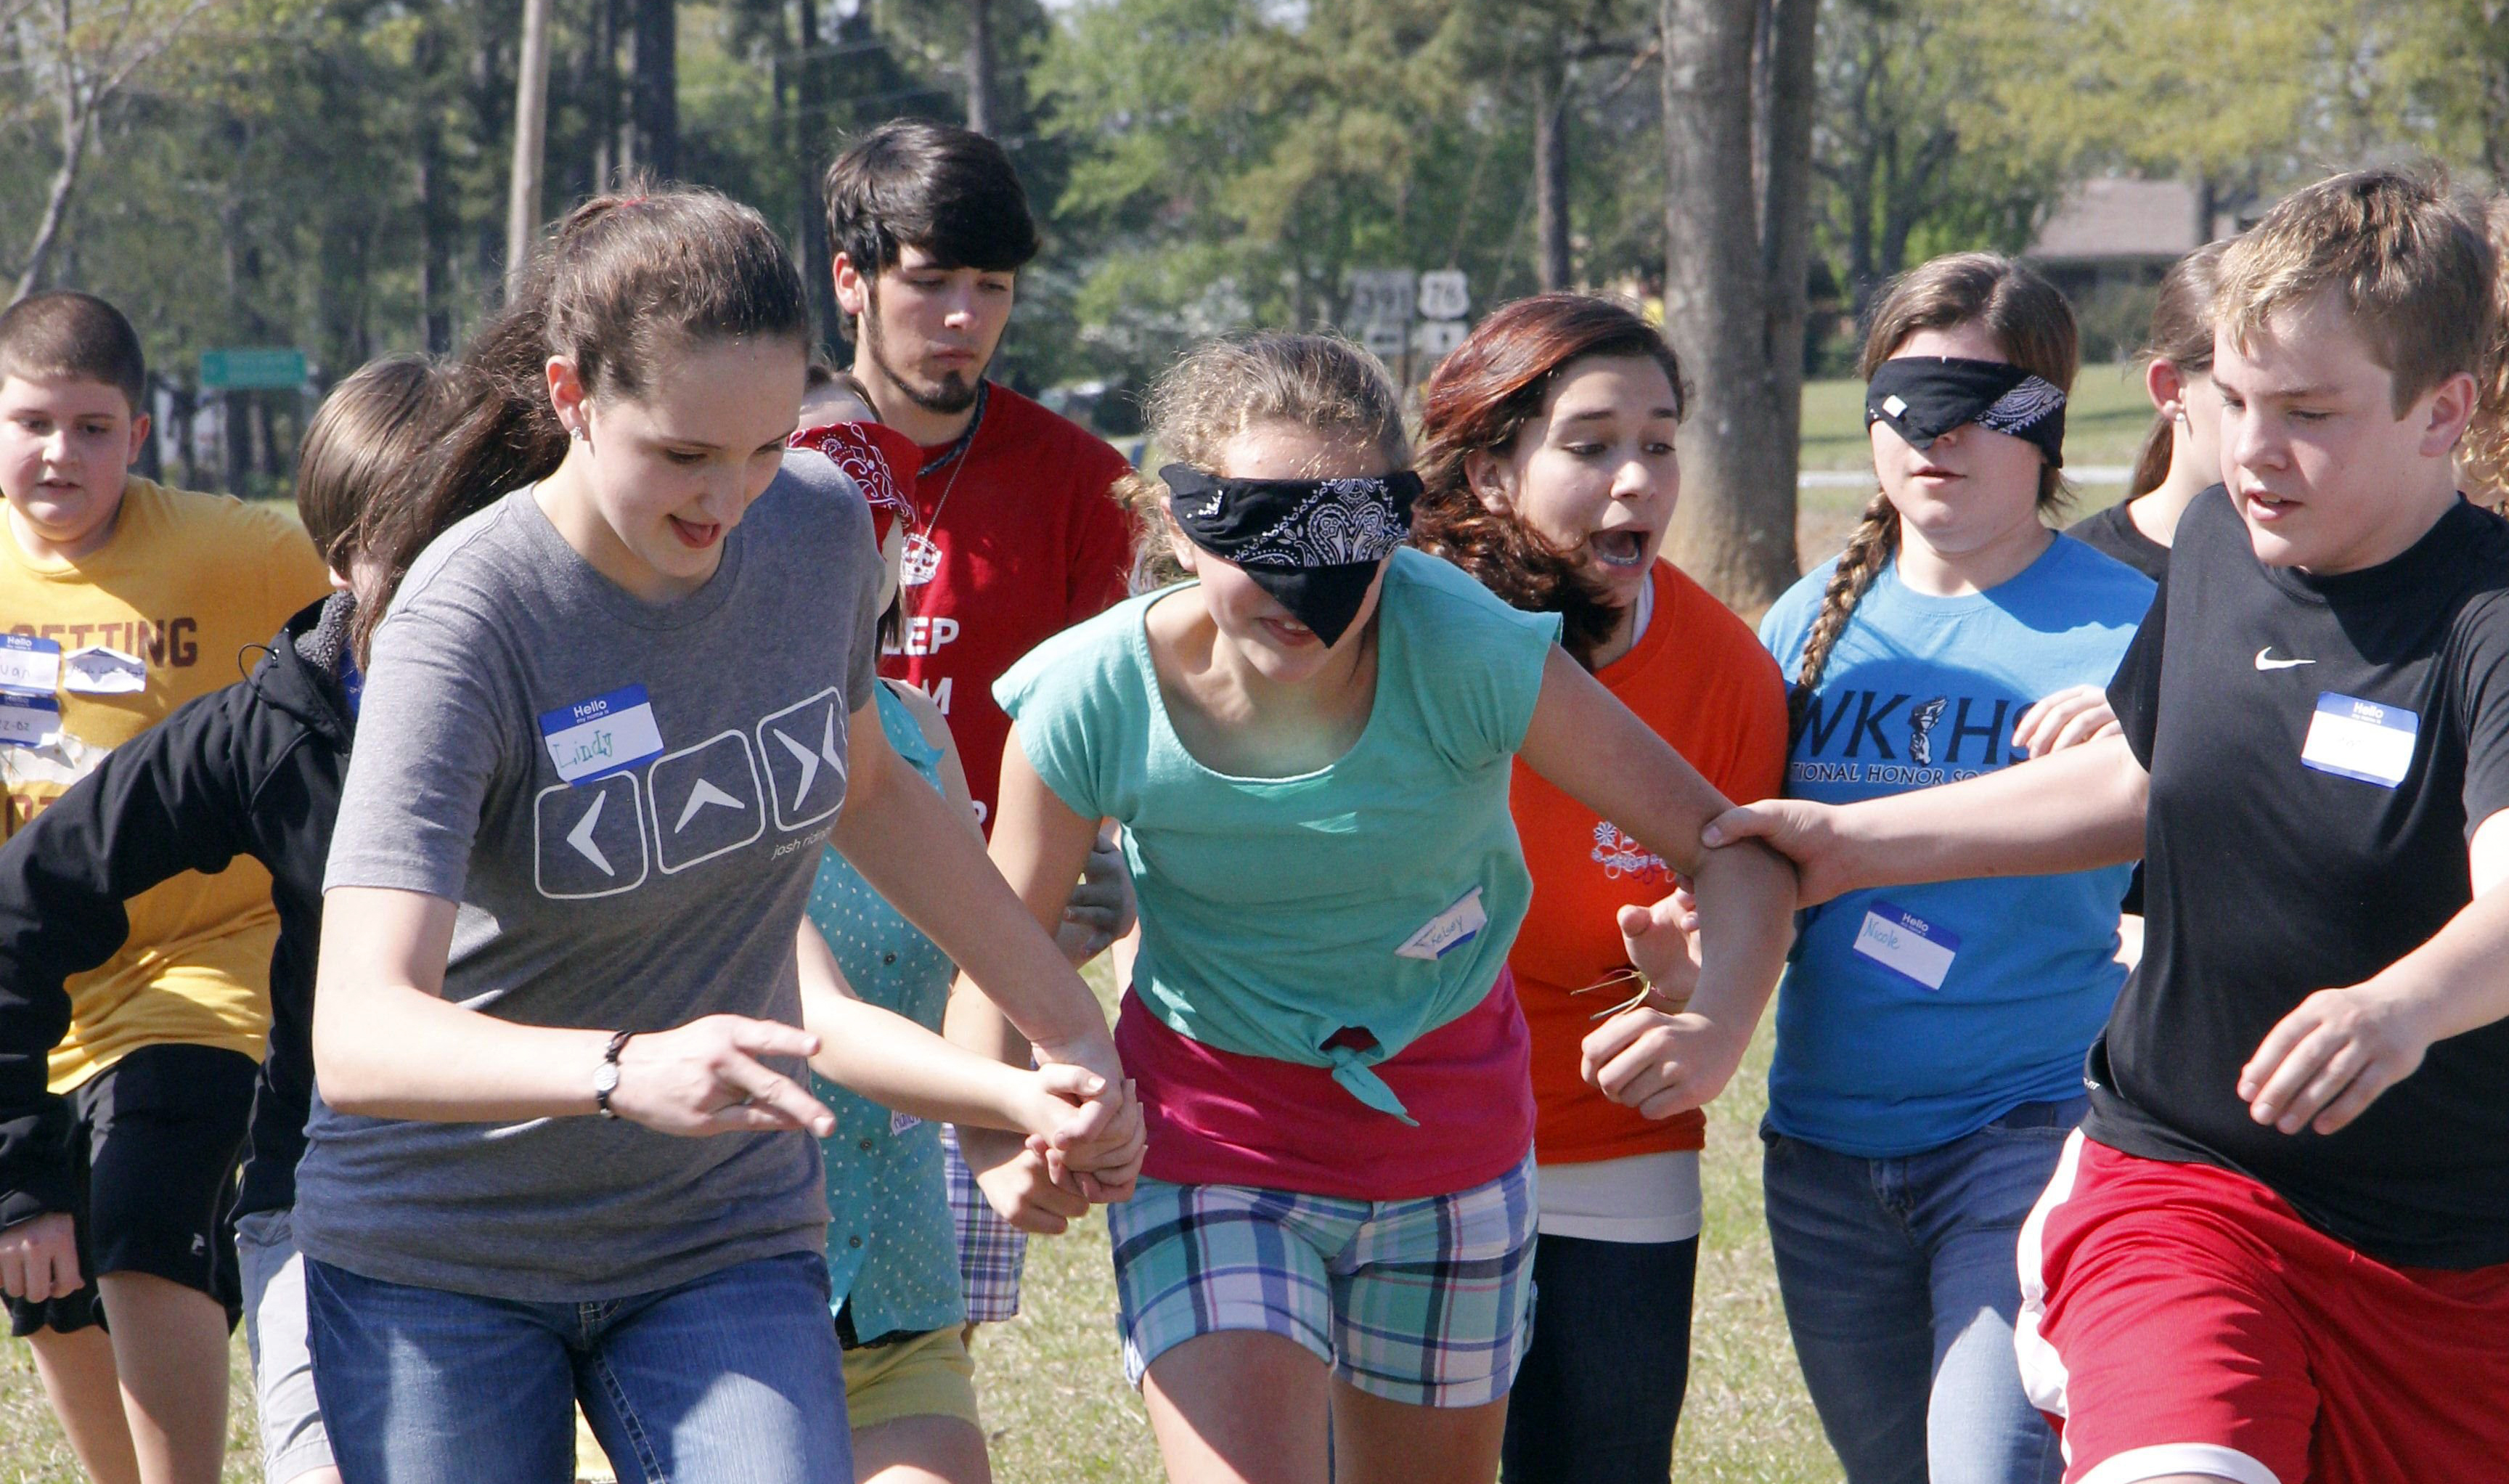 Youth Group Games With A Lesson Leadertreks Youth Ministry Blog